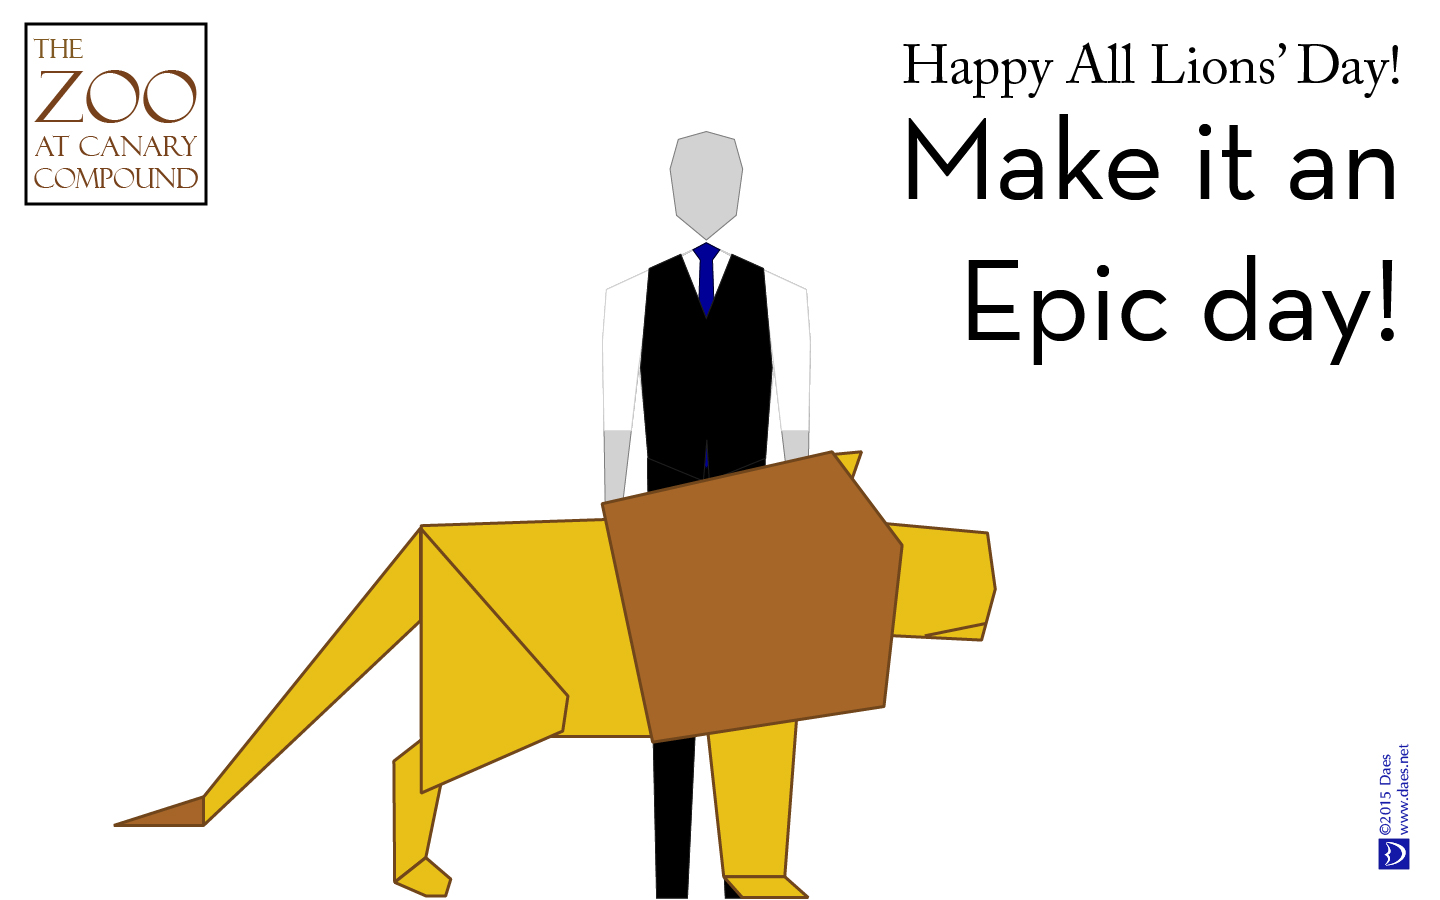 Make it an Epic day!